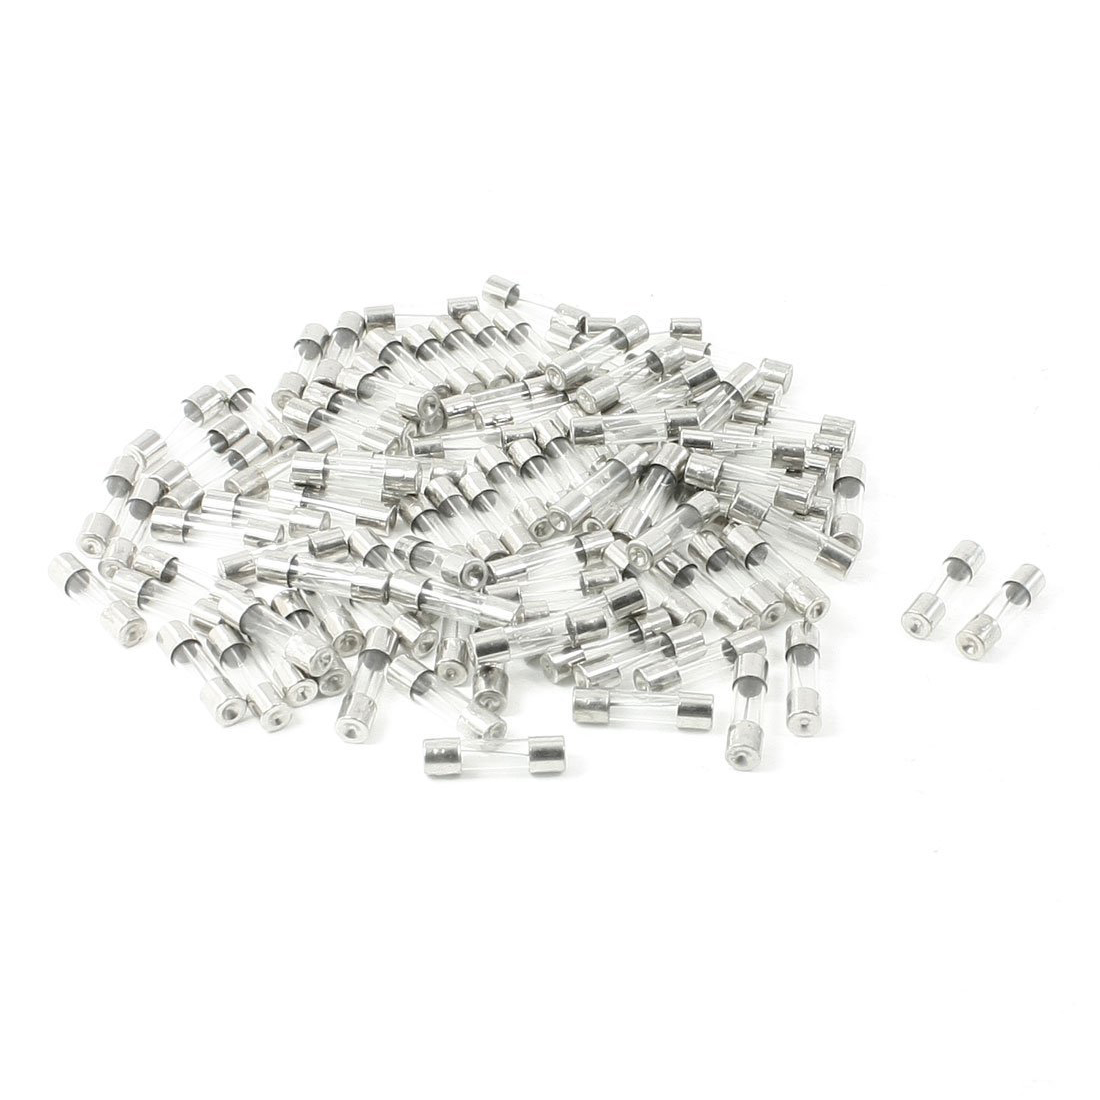 Ews 100 Pcs 250 Volts 10amp Fast Blow Type Glass Tube Fuses 5 X 20mm In Fuses From Home